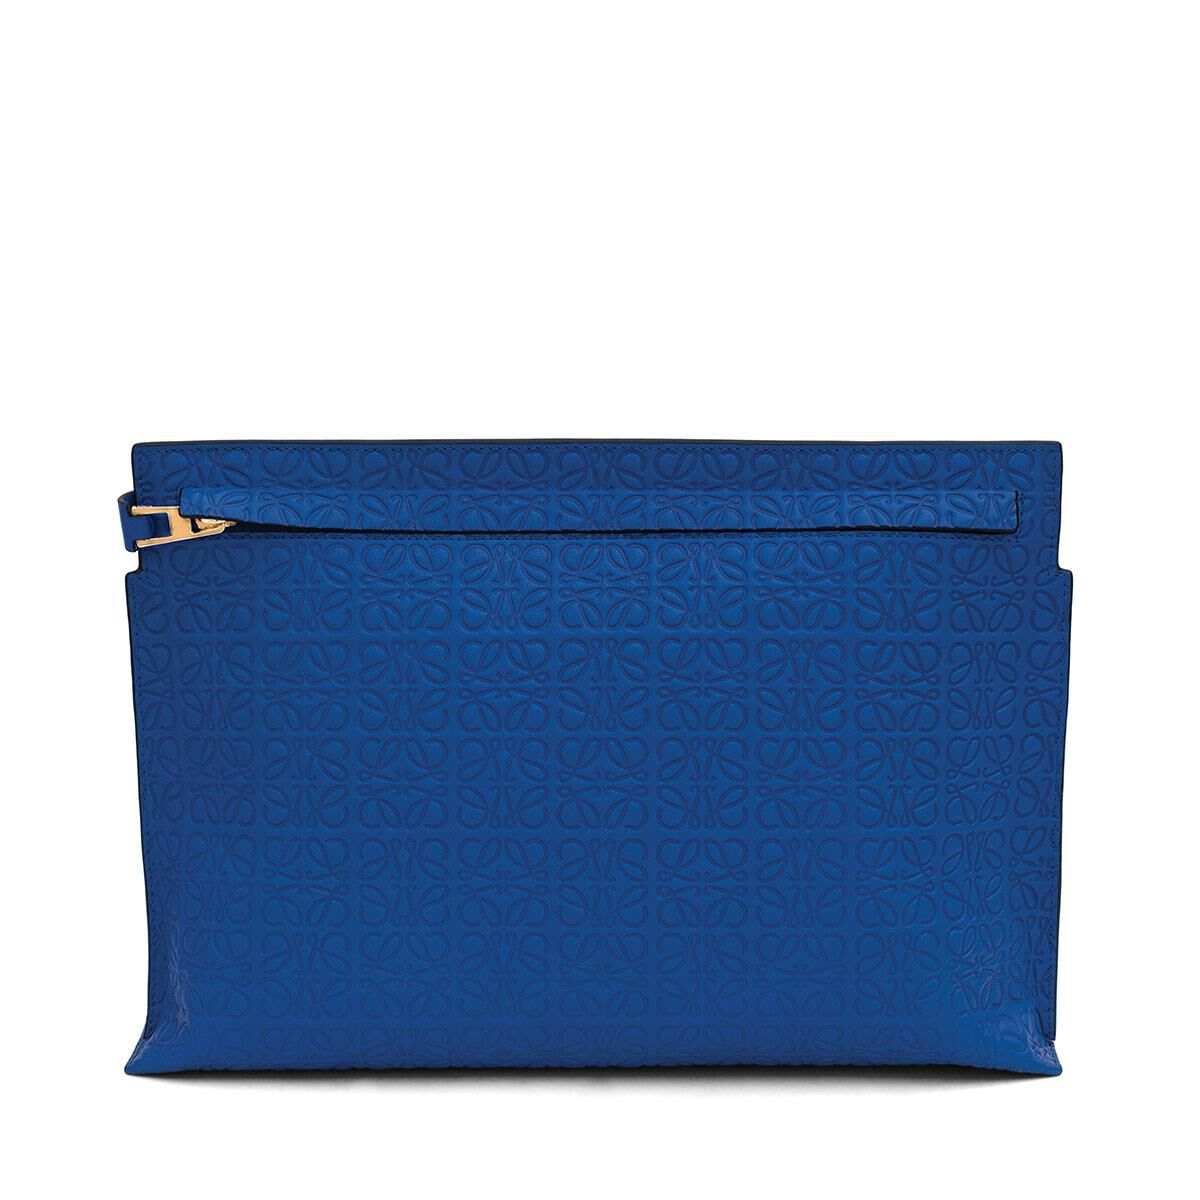 LOEWE T Pouch Repeat Azul Electrico all